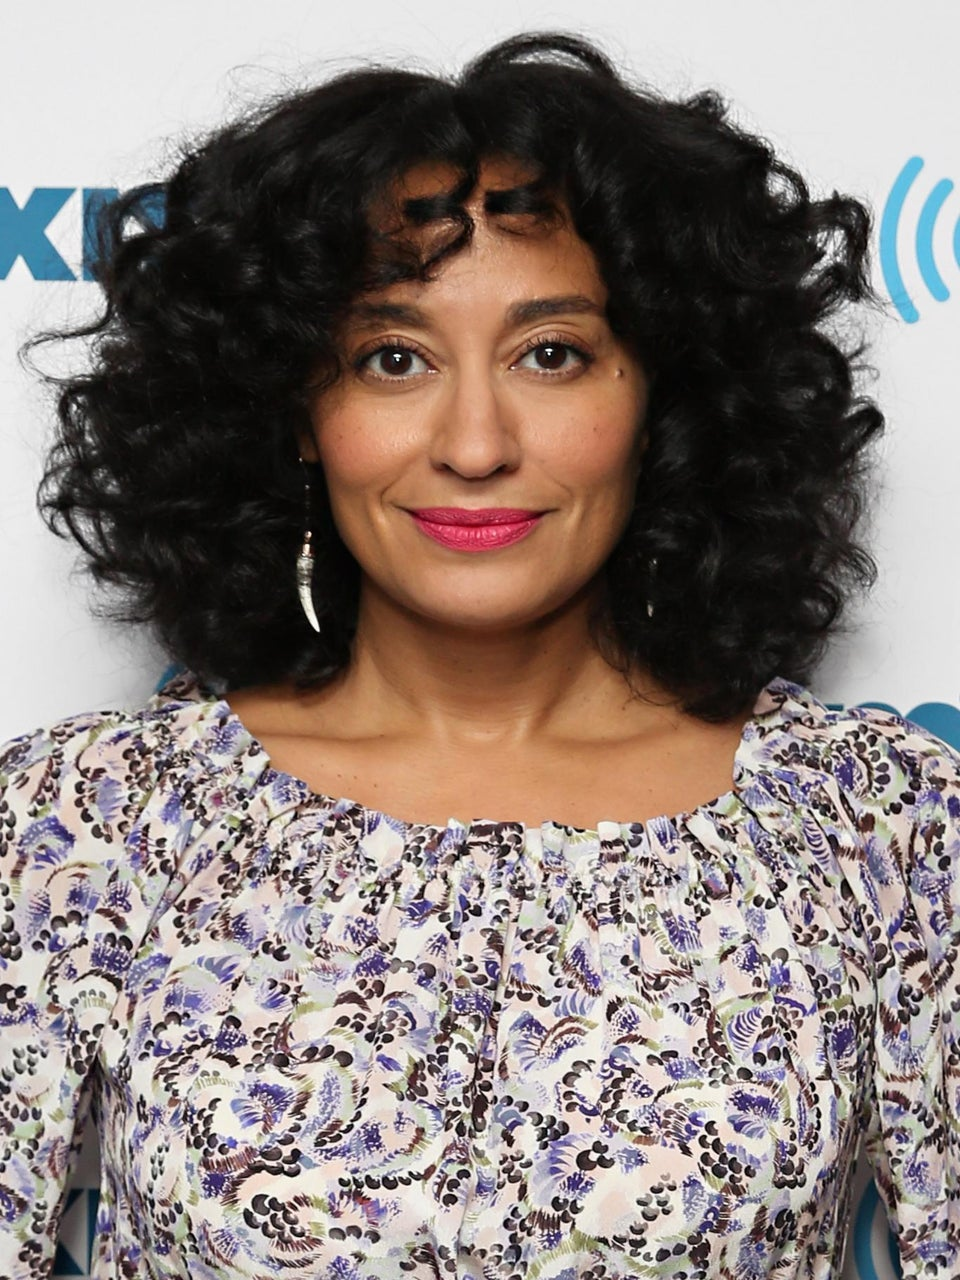 Tracee Ellis Ross on Her TV Characters: 'My Personality Falls Somewhere in Between Bow and Joan'